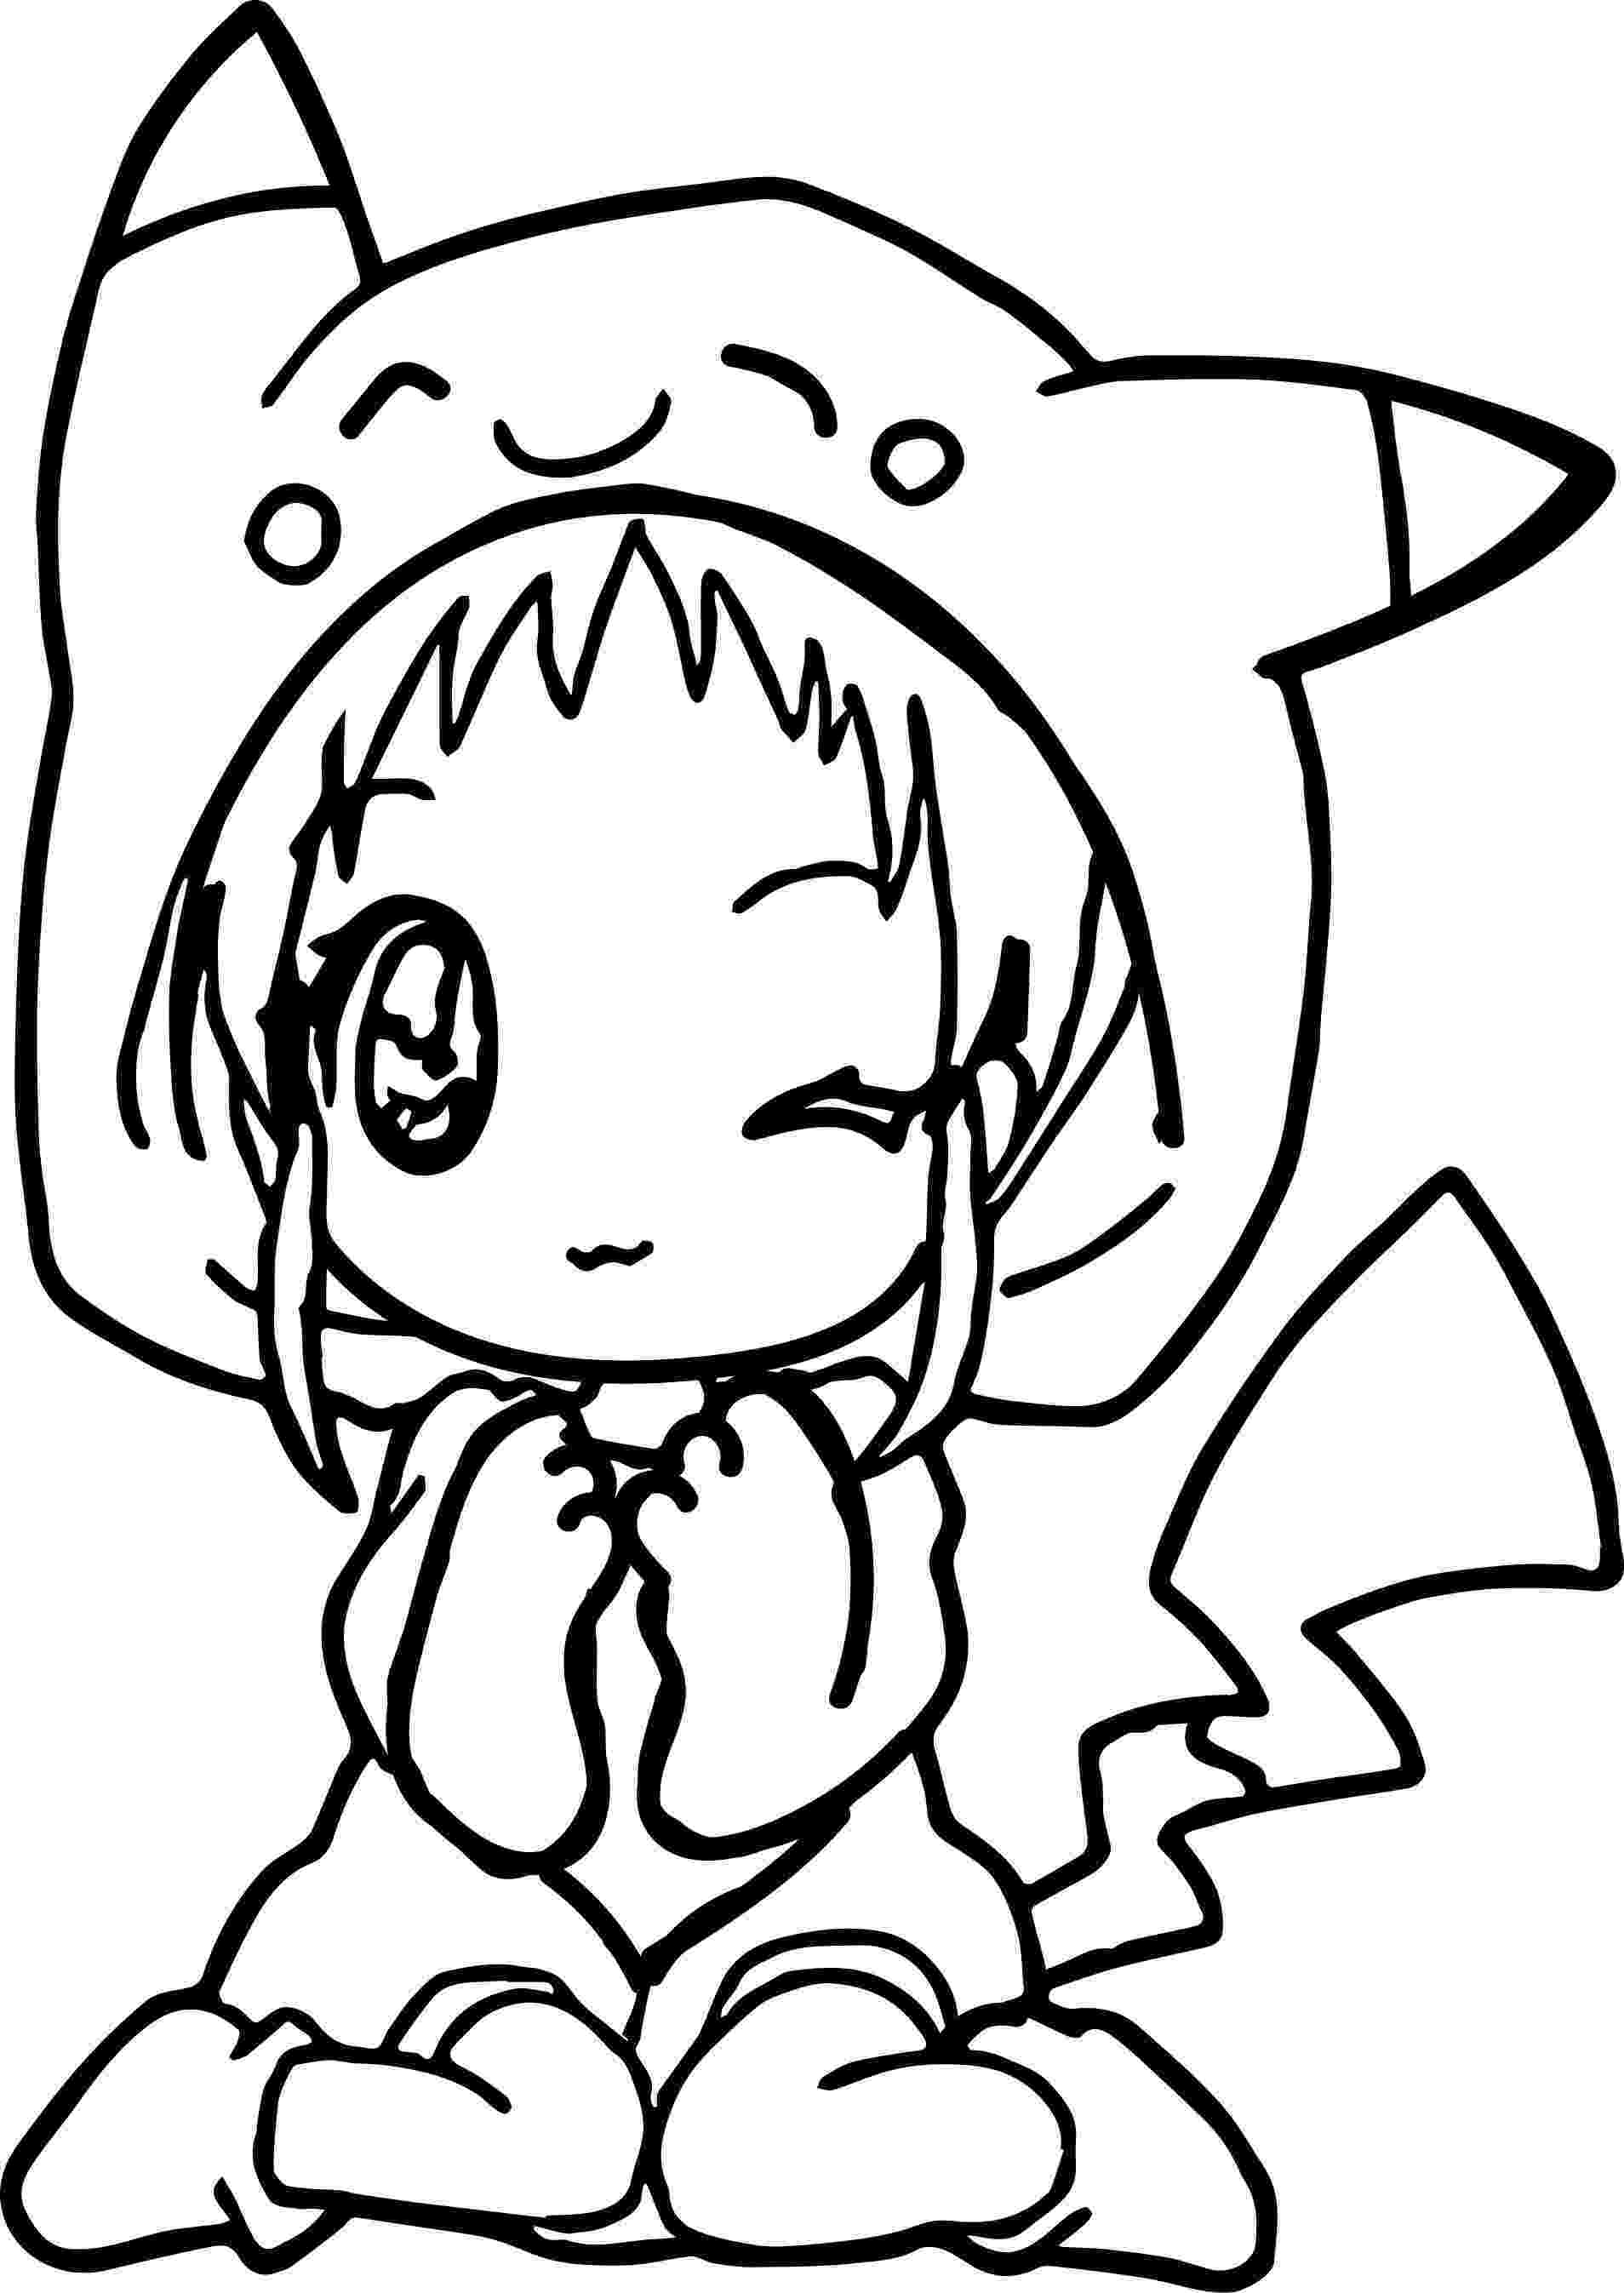 anime girl coloring pages anime coloring pages getcoloringpagescom anime girl pages coloring